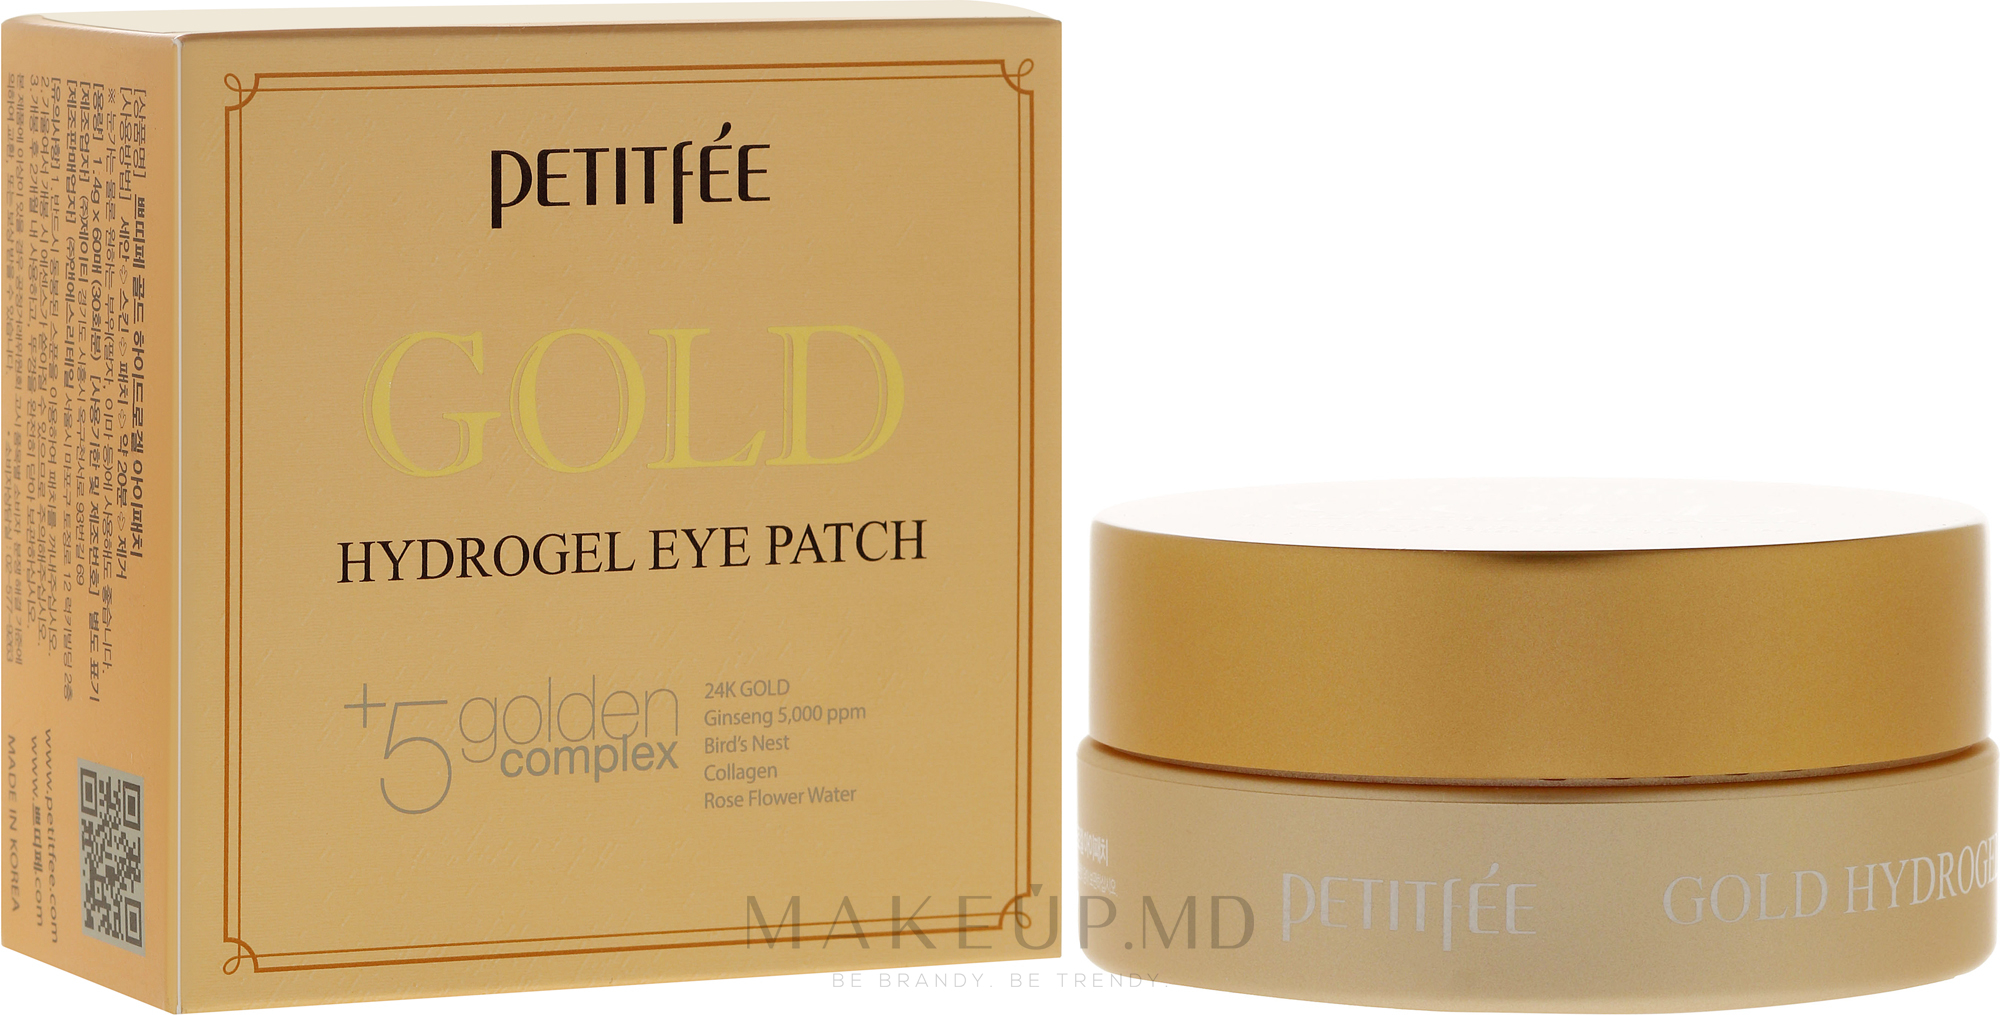 Patch-uri sub ochi - Petitfee&Koelf Gold Hydrogel Eye Patch — Imagine 60 buc